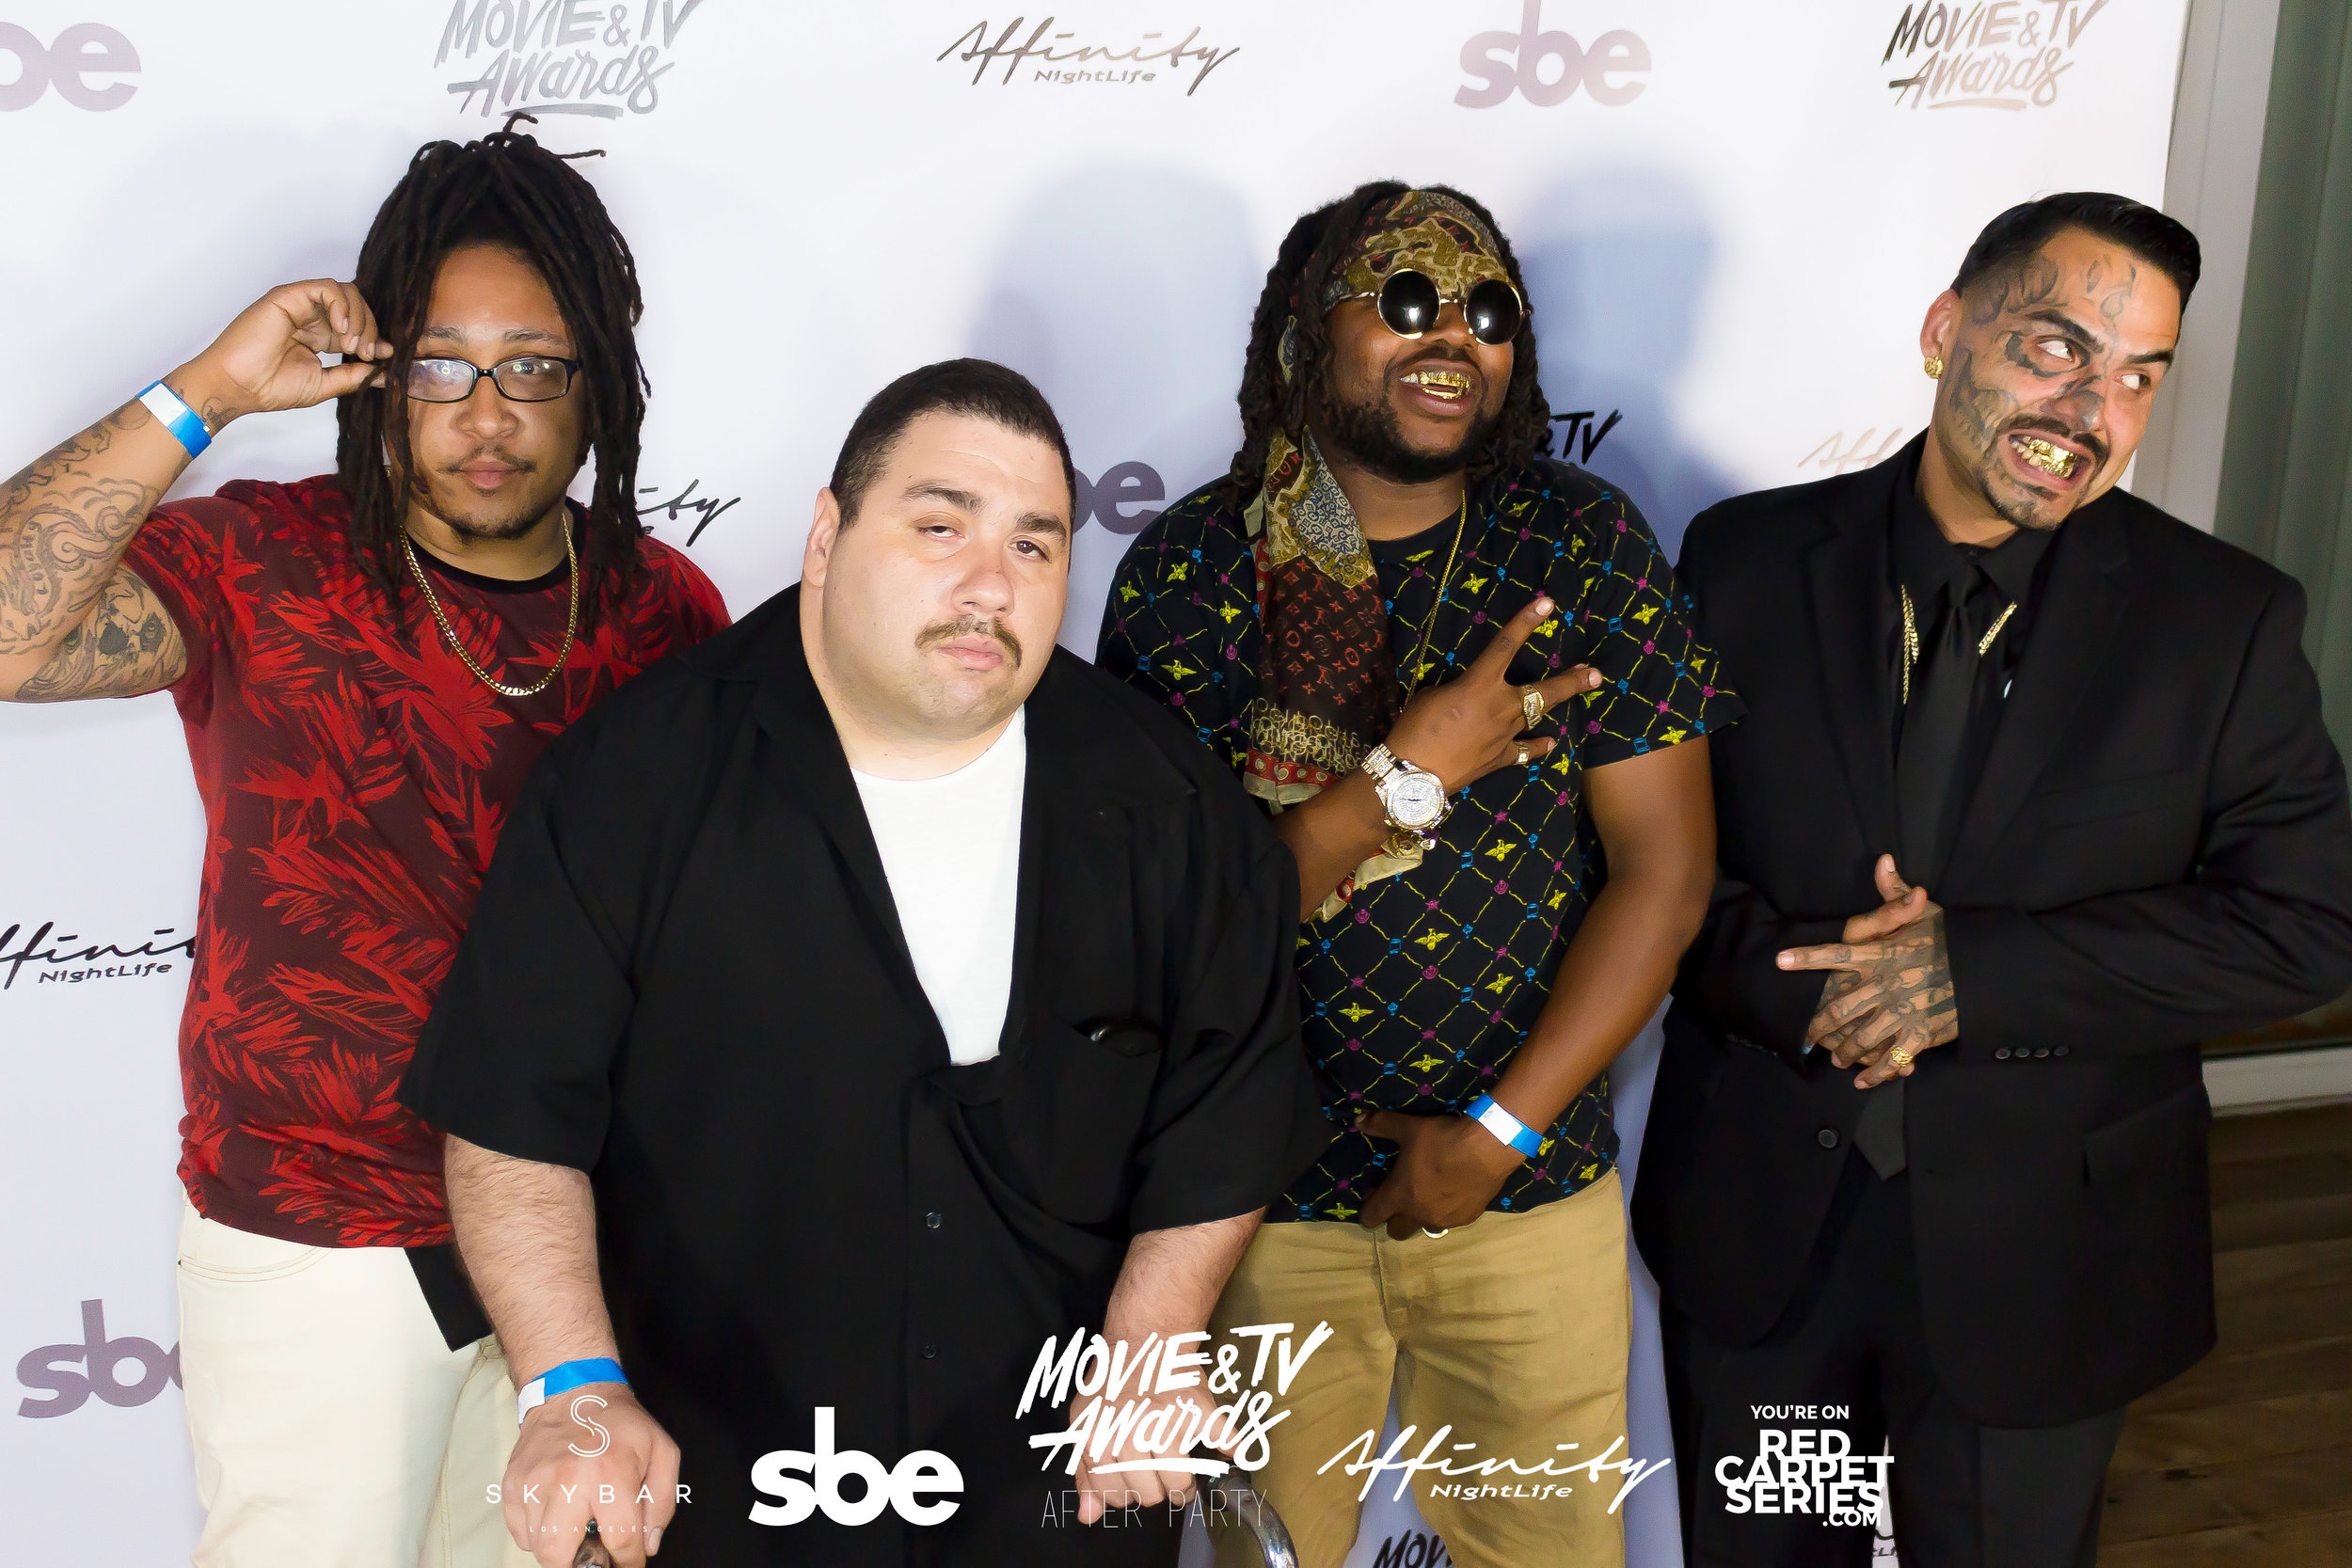 Affinity Nightlife MTV Movie & TV Awards After Party - Skybar at Mondrian - 06-15-19 - Vol. 2_119.jpg